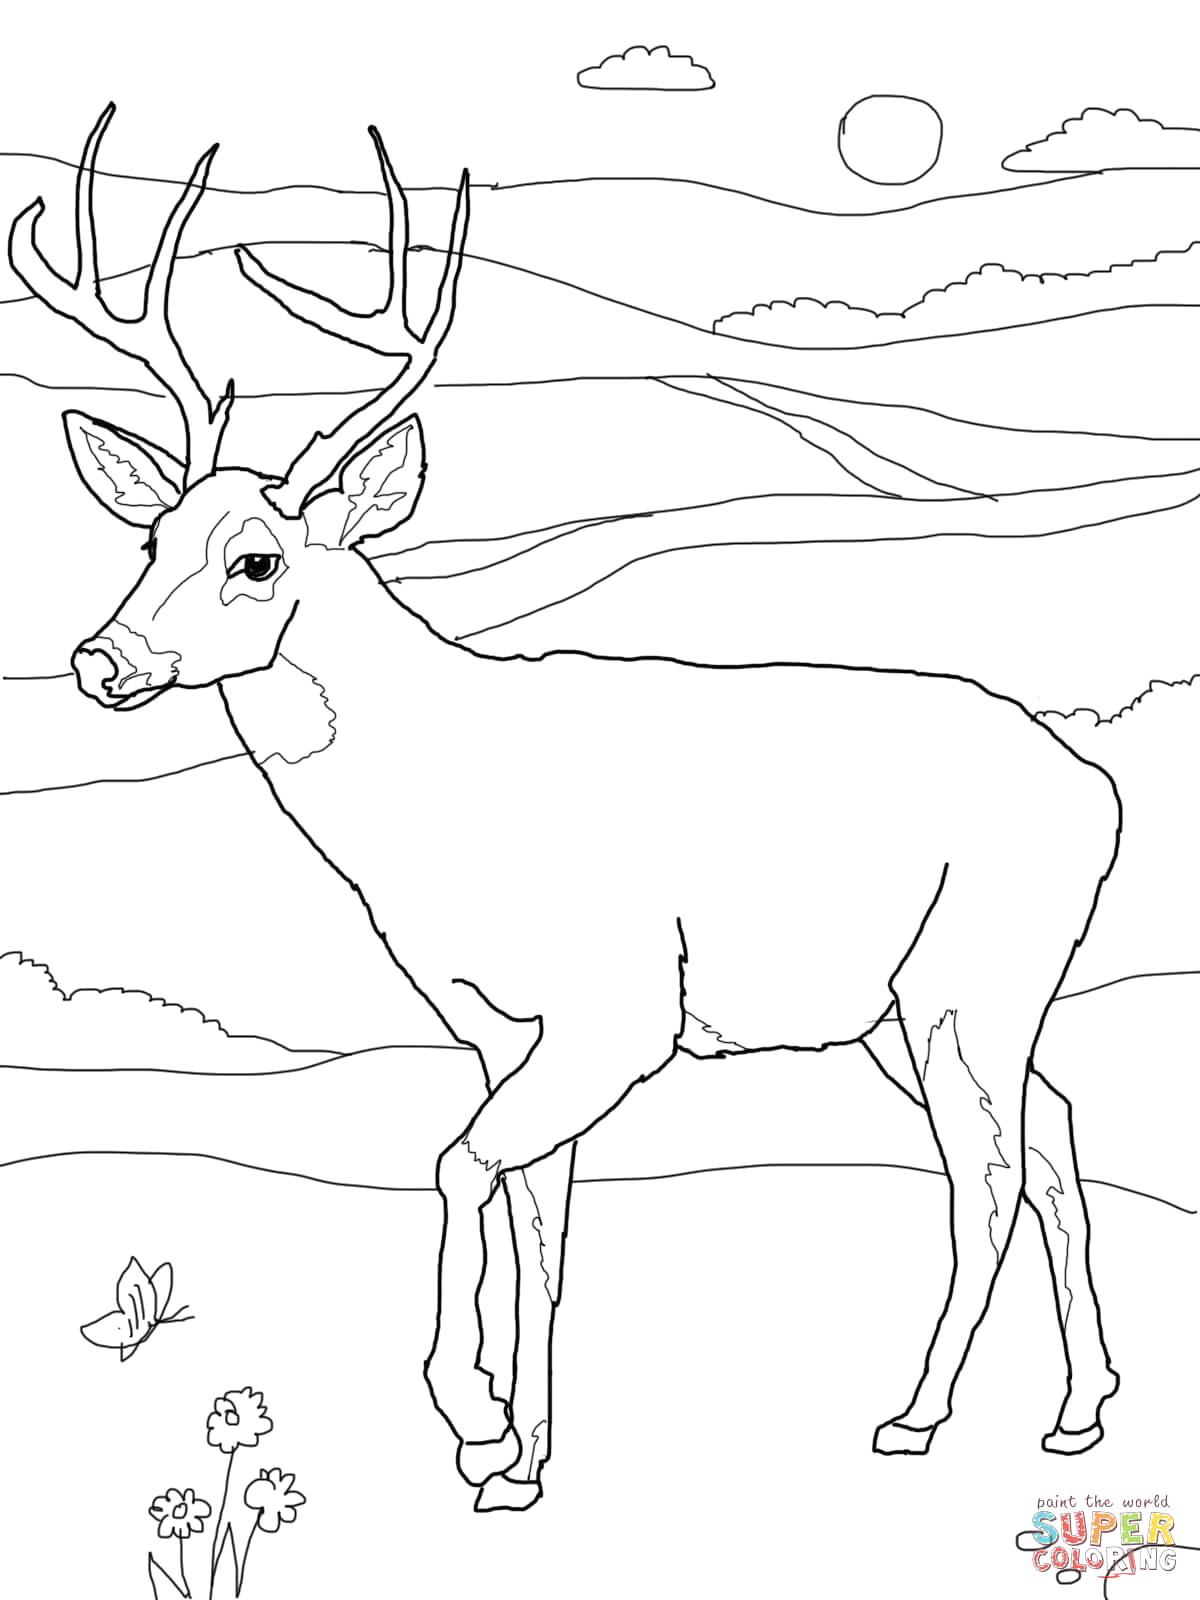 White Tailed Deer Coloring Pages to Print White Tailed Deer Coloring Page